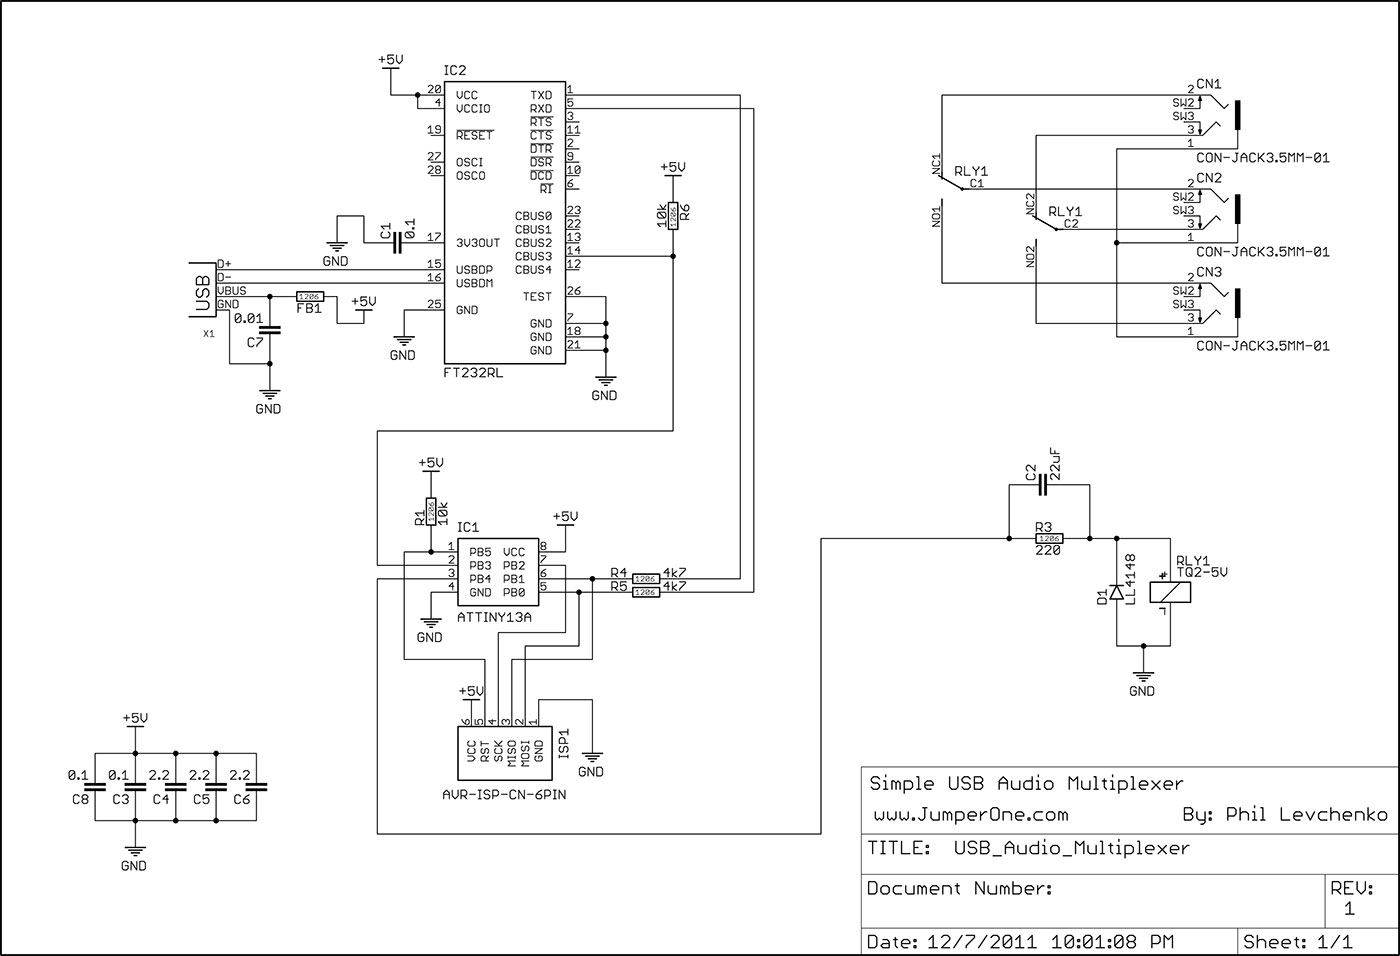 USB Audio Multiplexer Schematic